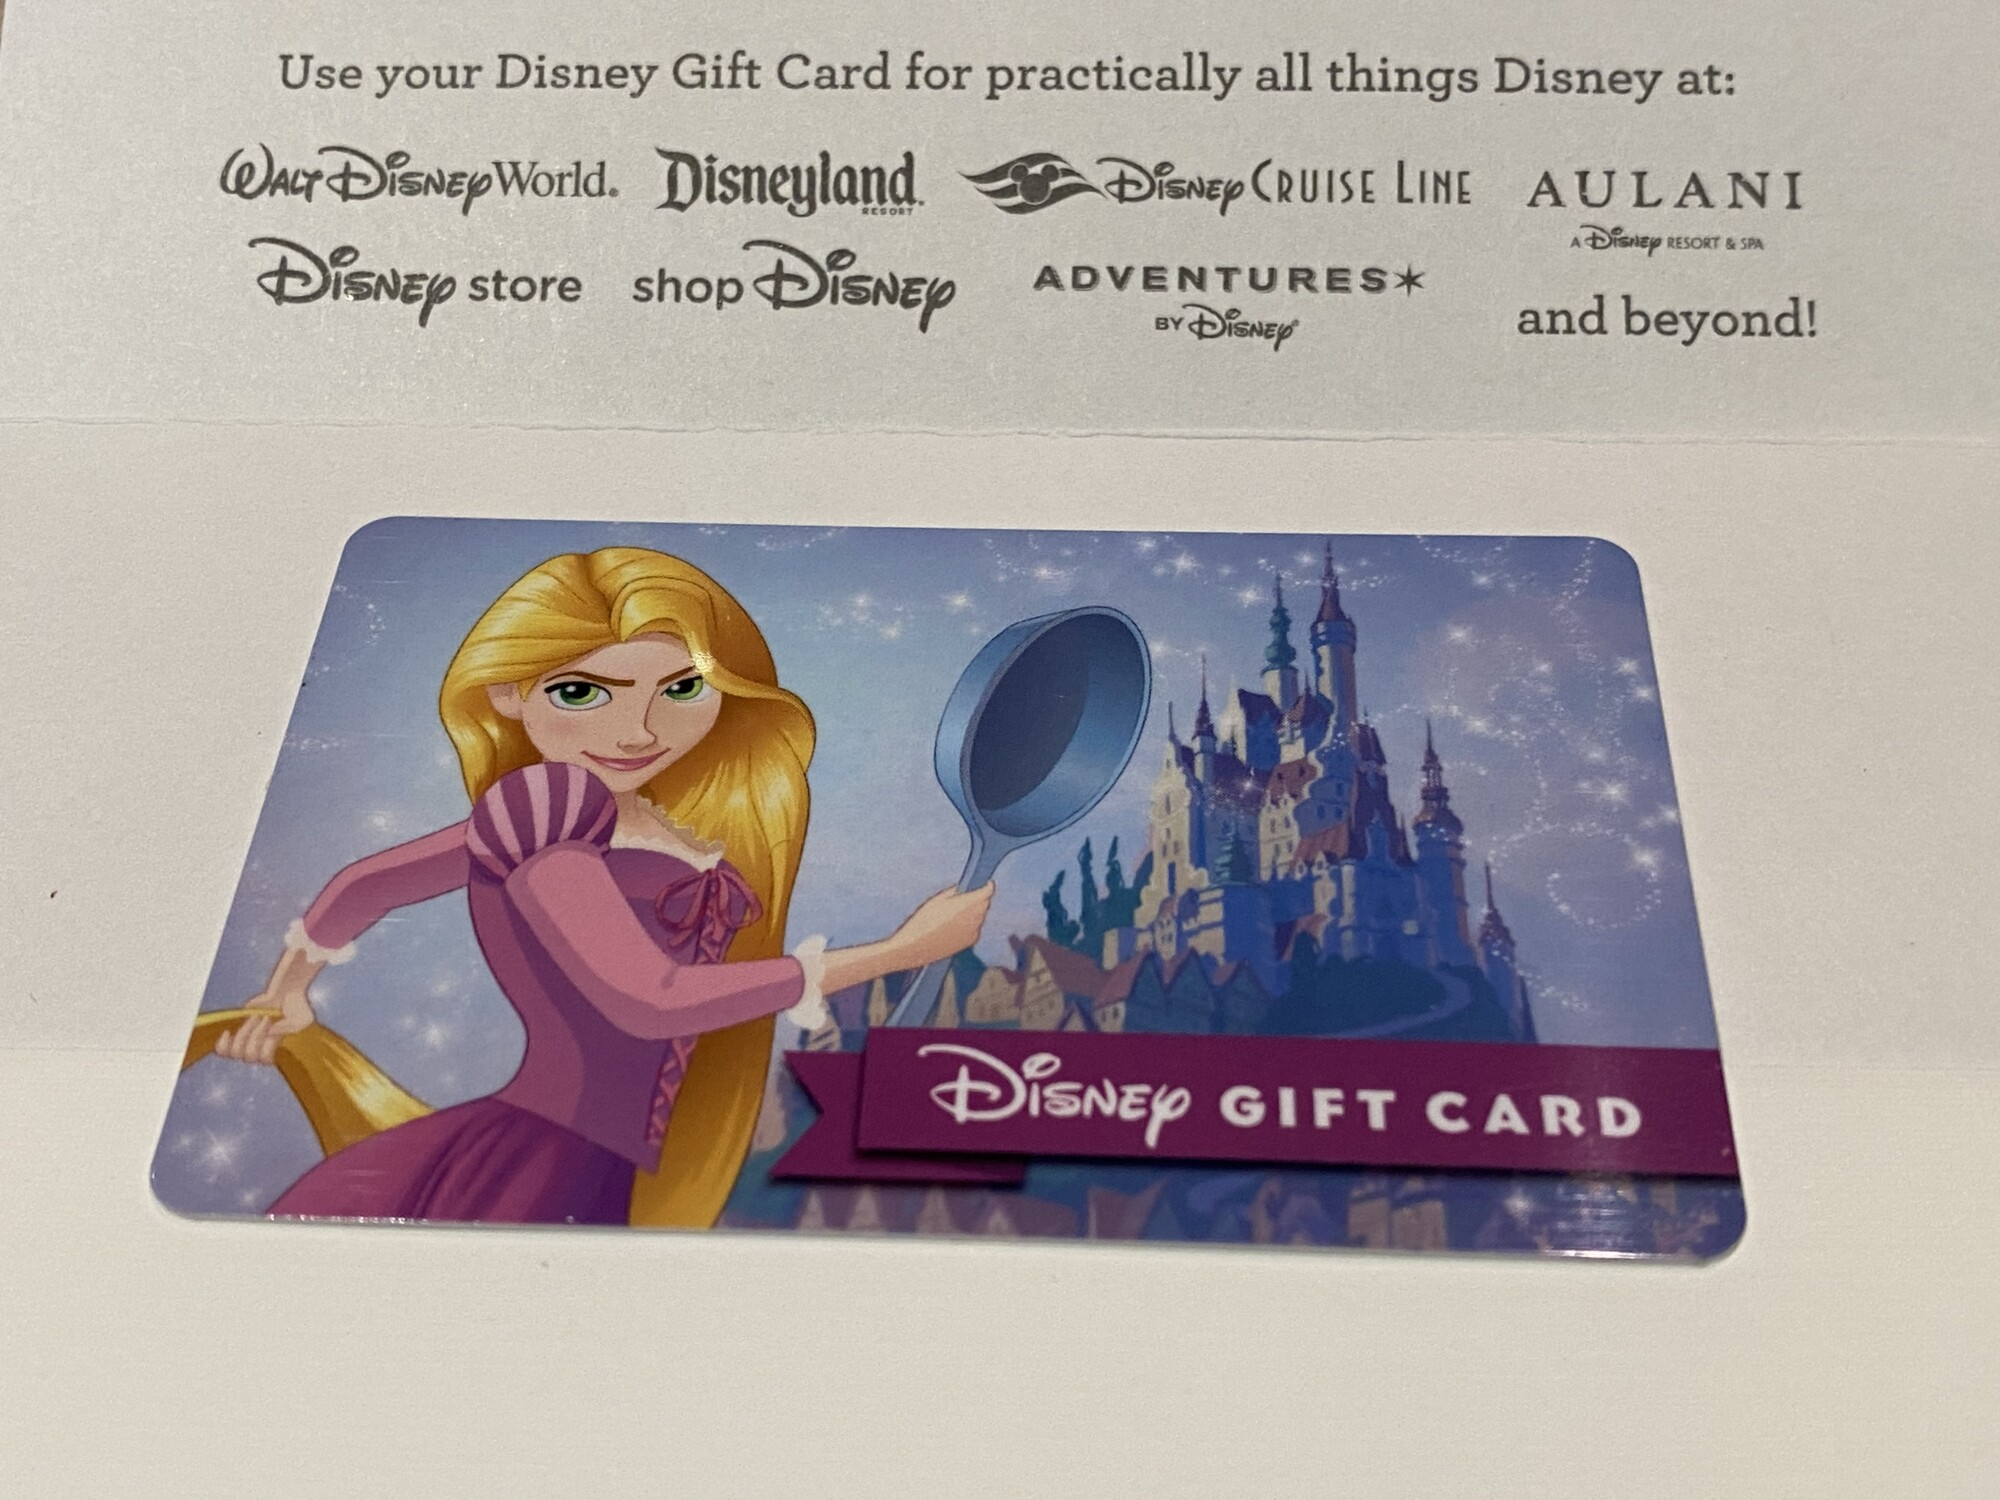 New Disney Gift Card Designs for Your Holiday Gift Giving from shopDisney! 18